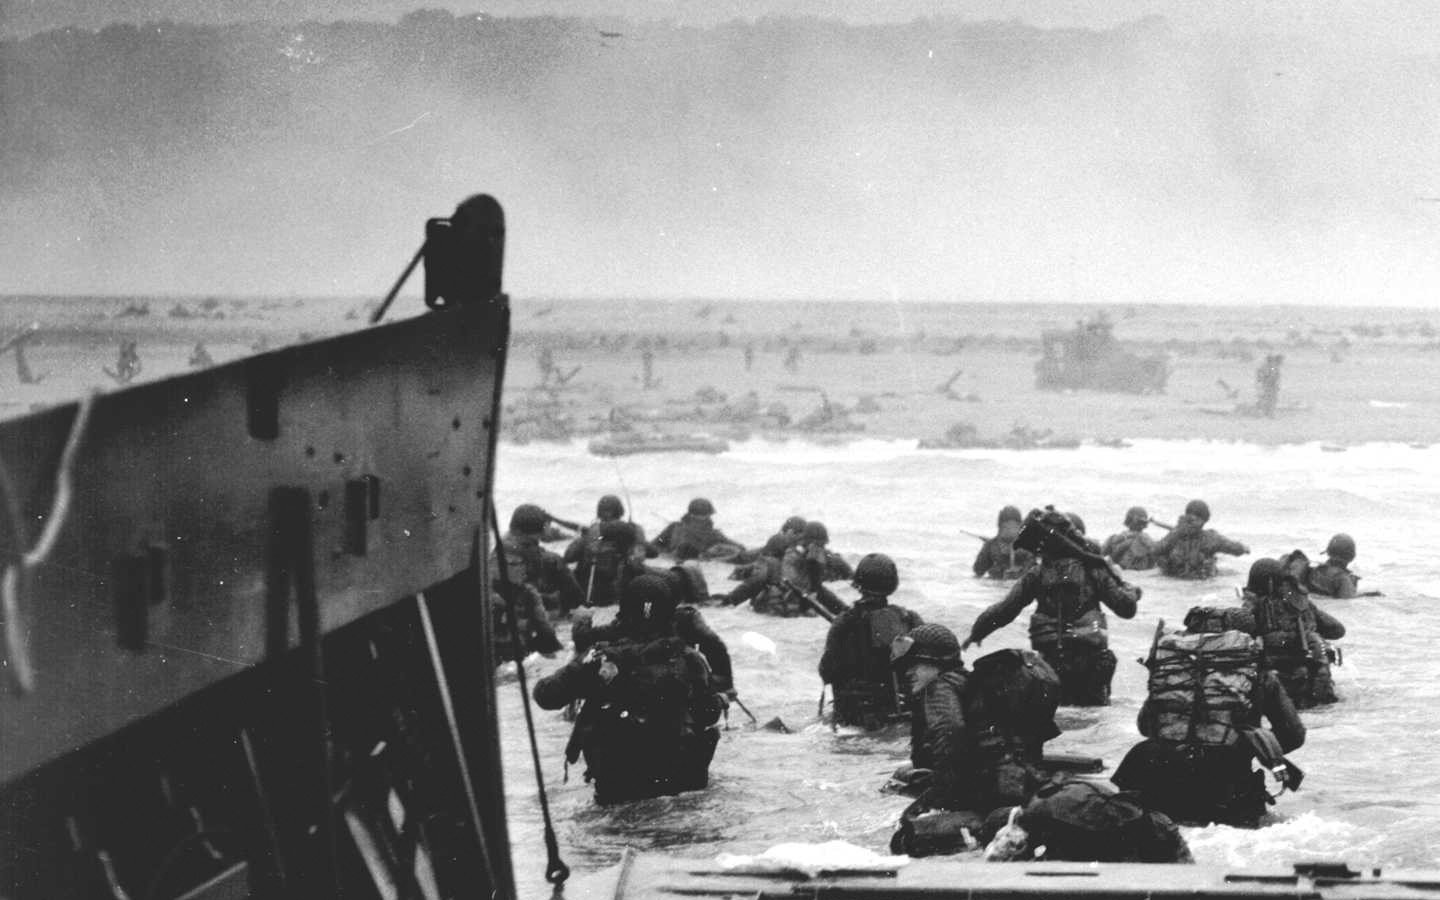 Soldiers American Normandy history grayscale World War II D Day 1440x900